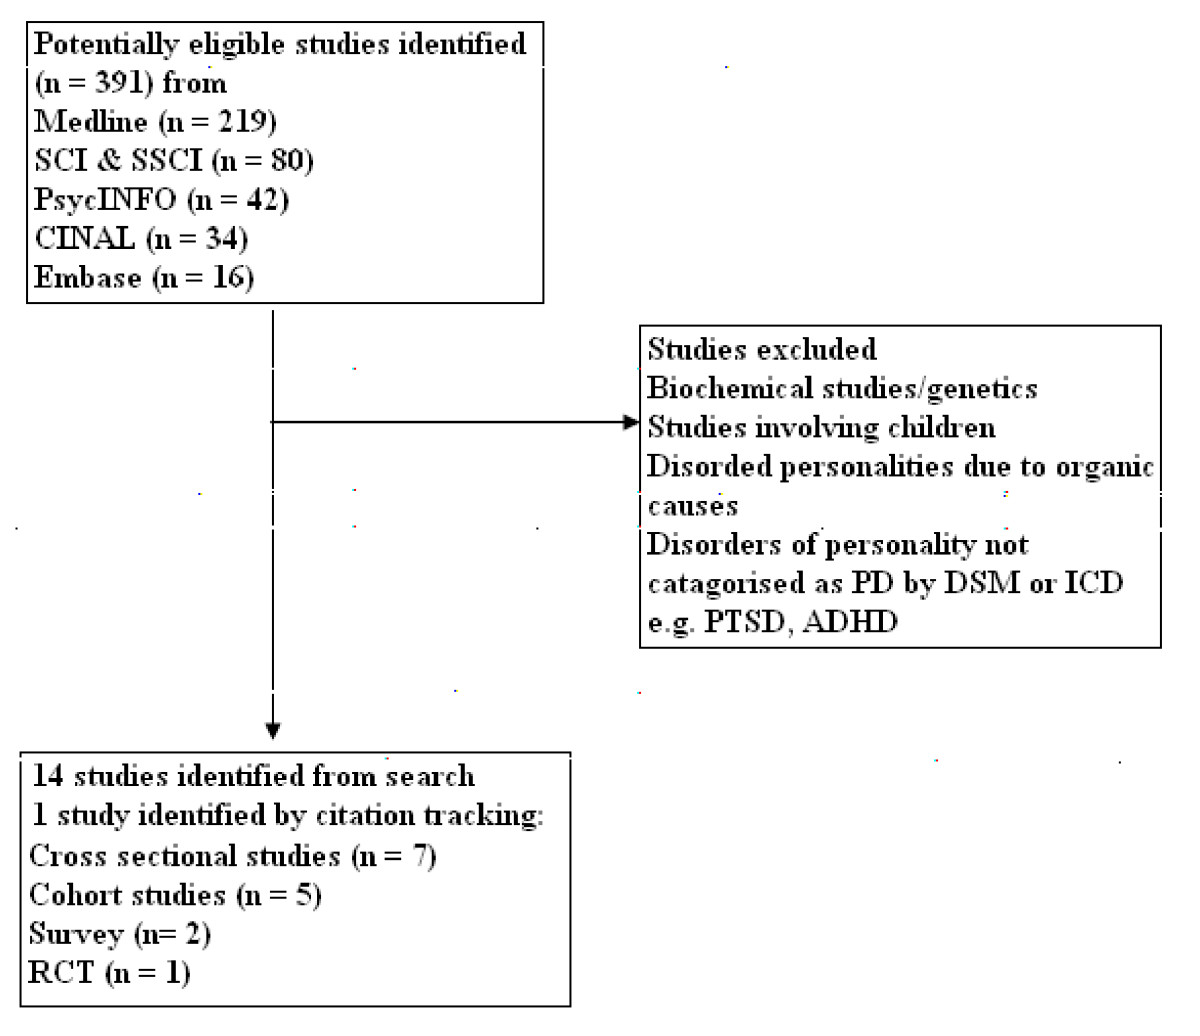 https://static-content.springer.com/image/art%3A10.1186%2F1471-244X-10-33/MediaObjects/12888_2009_Article_663_Fig1_HTML.jpg